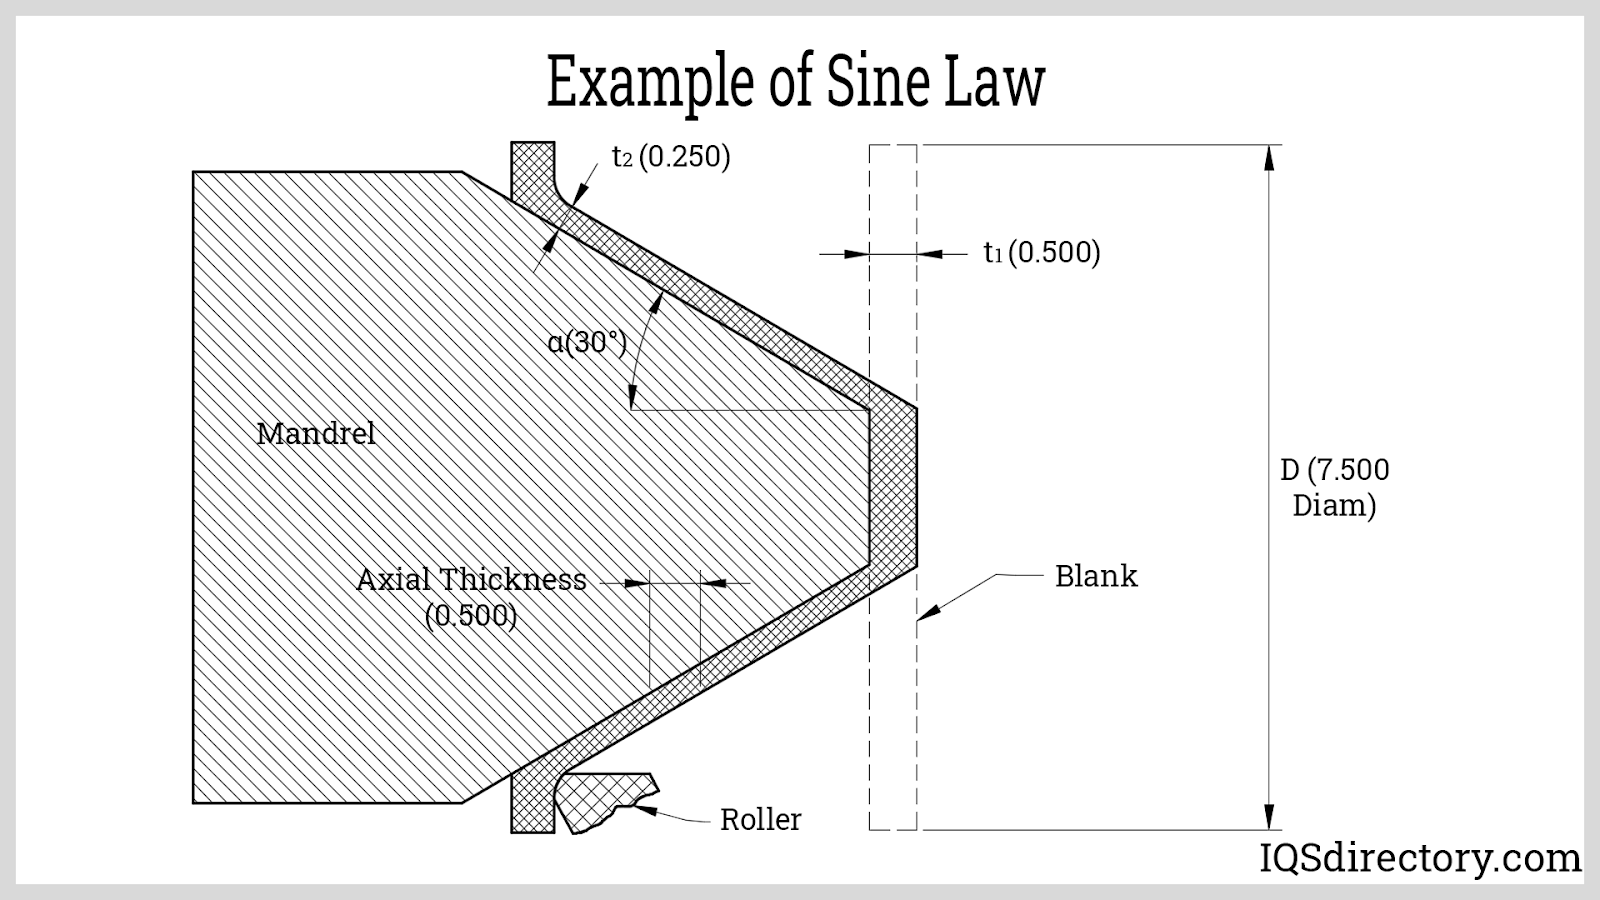 Example of Sine Law